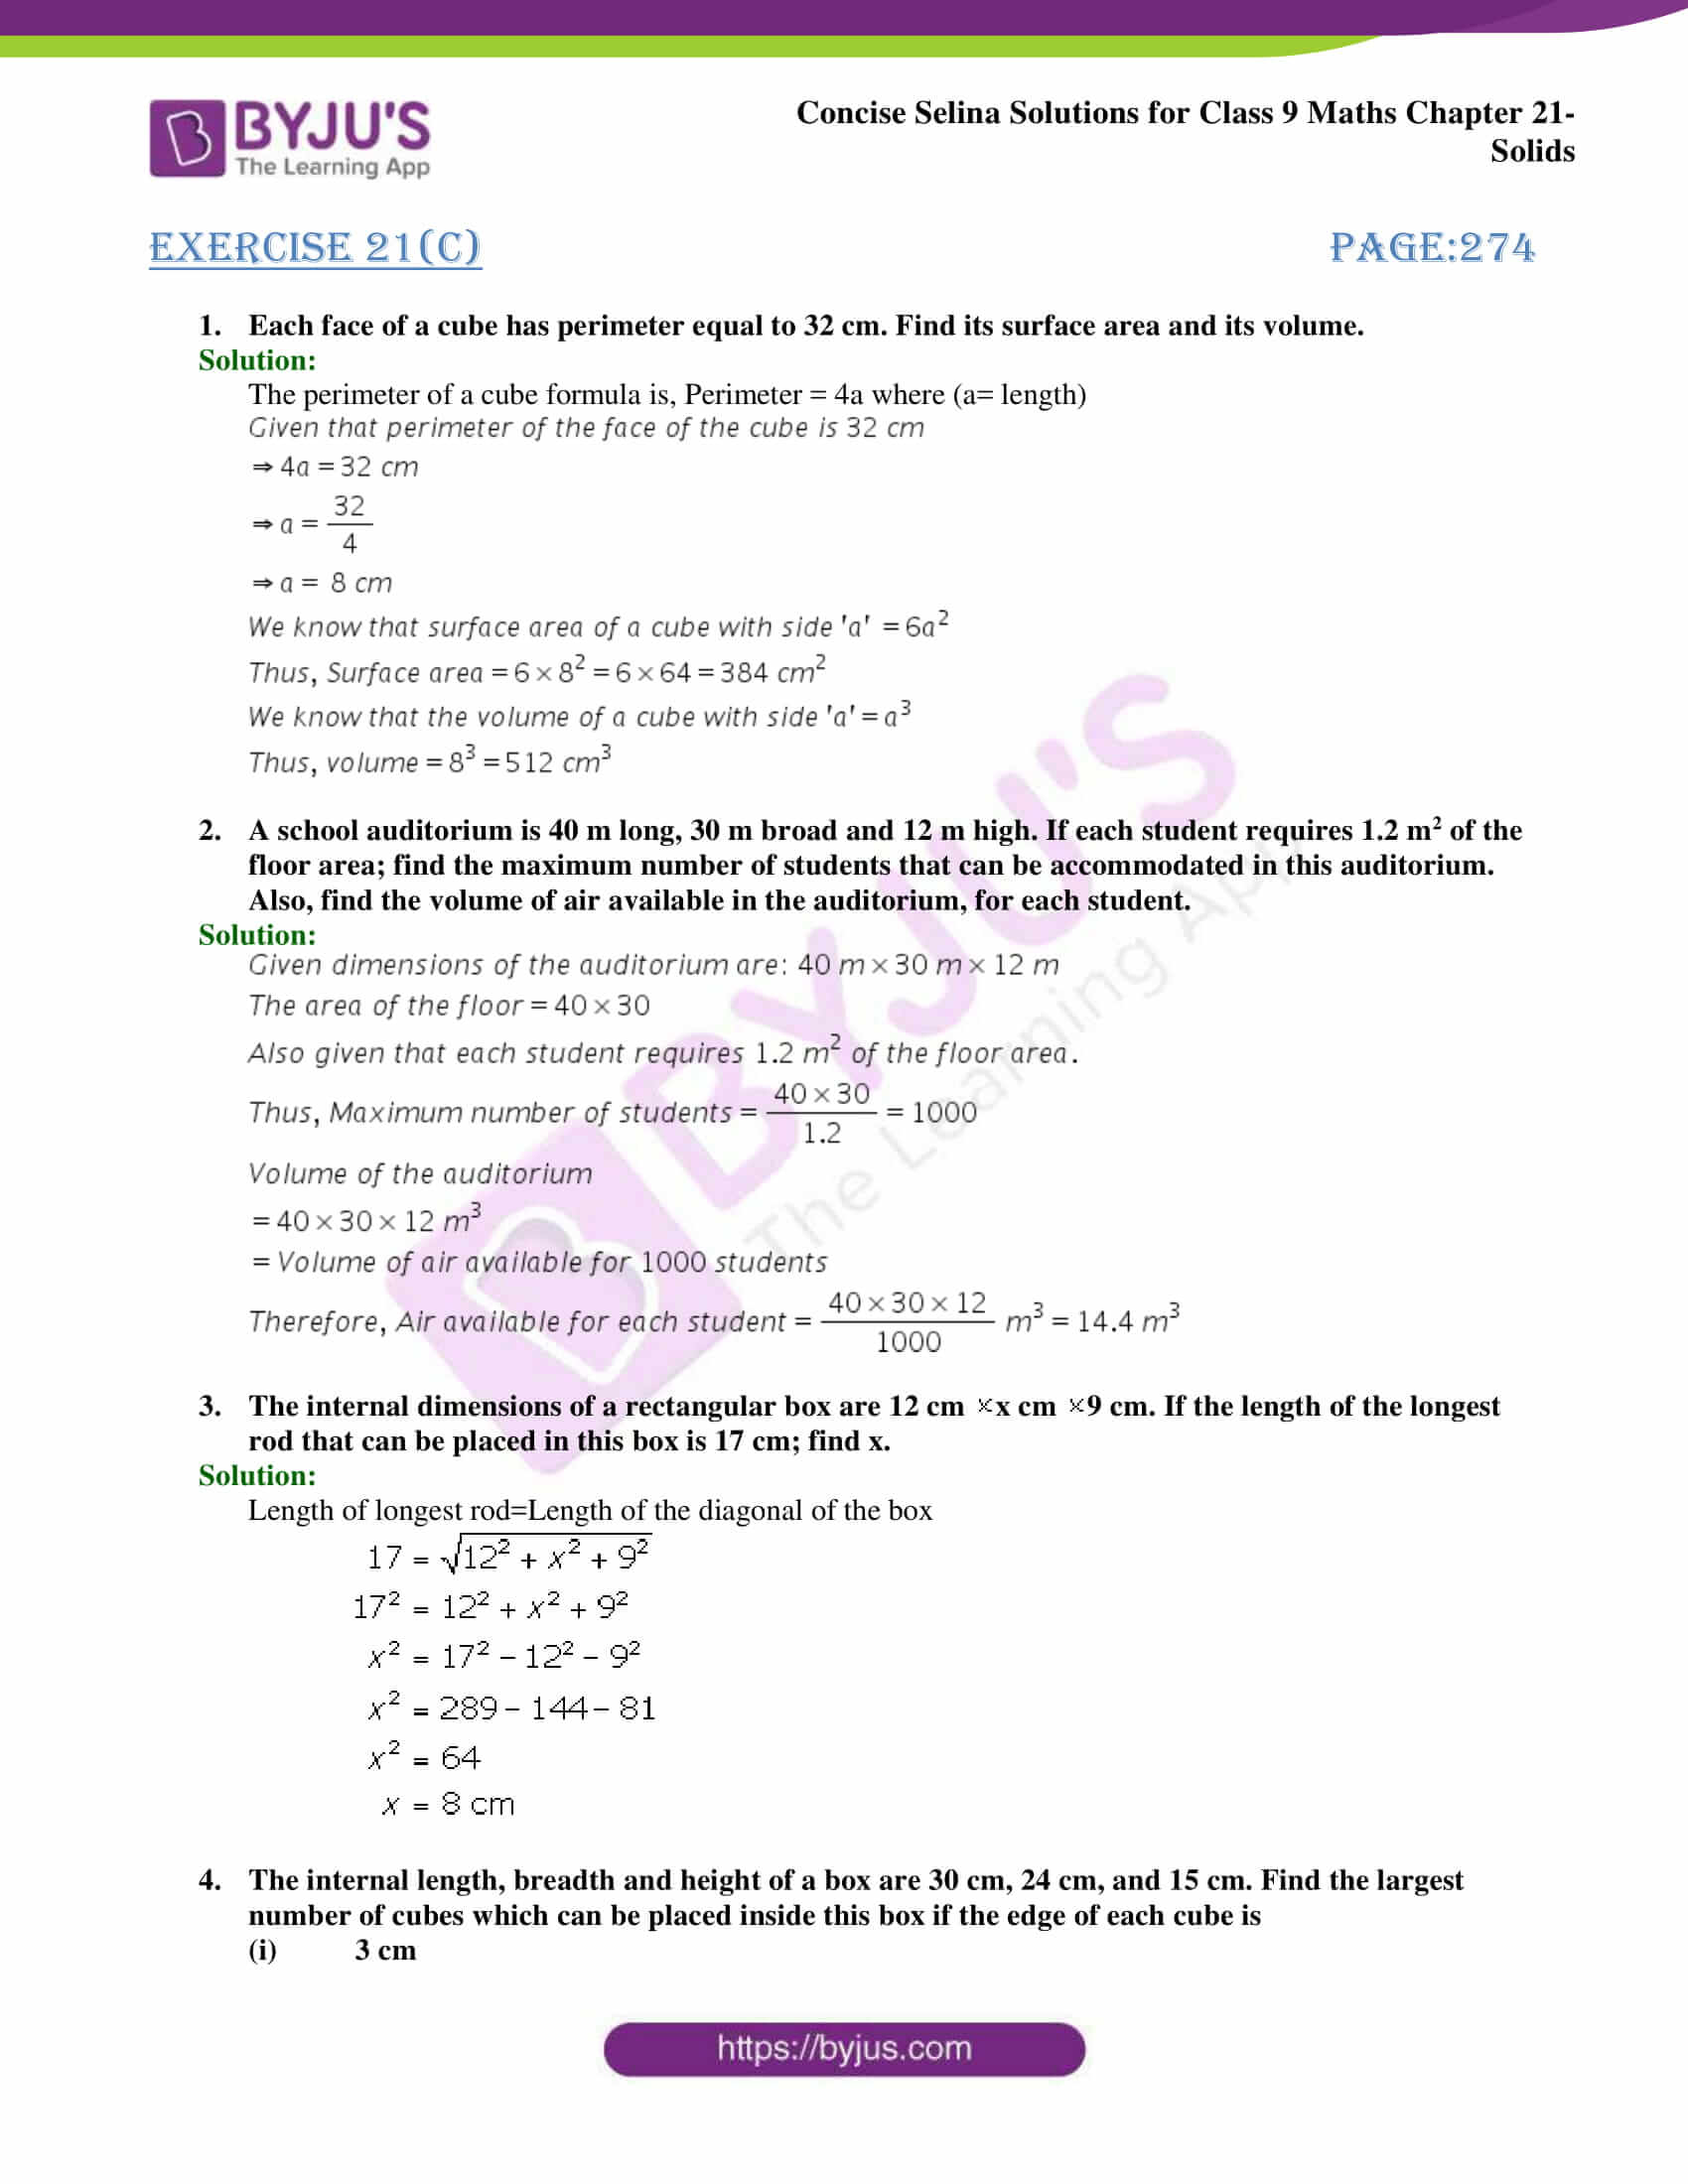 Concise Selina Solutions Class 9 Maths Chapter 21 Solids part 13